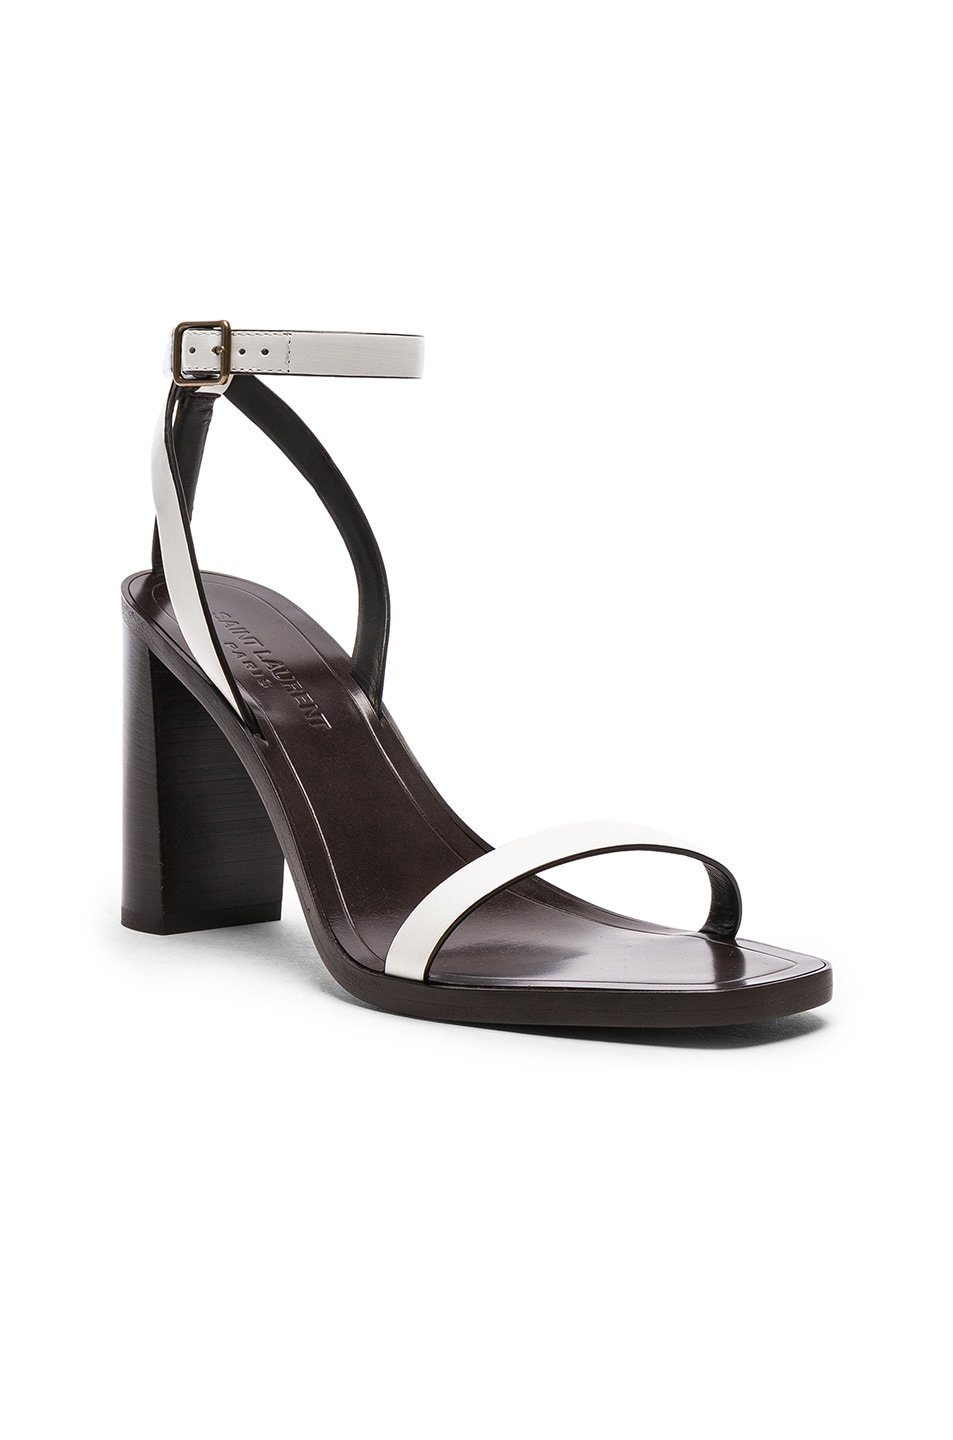 Image 2 of Saint Laurent Leather Loulou Ankle Strap Sandals in Optic White